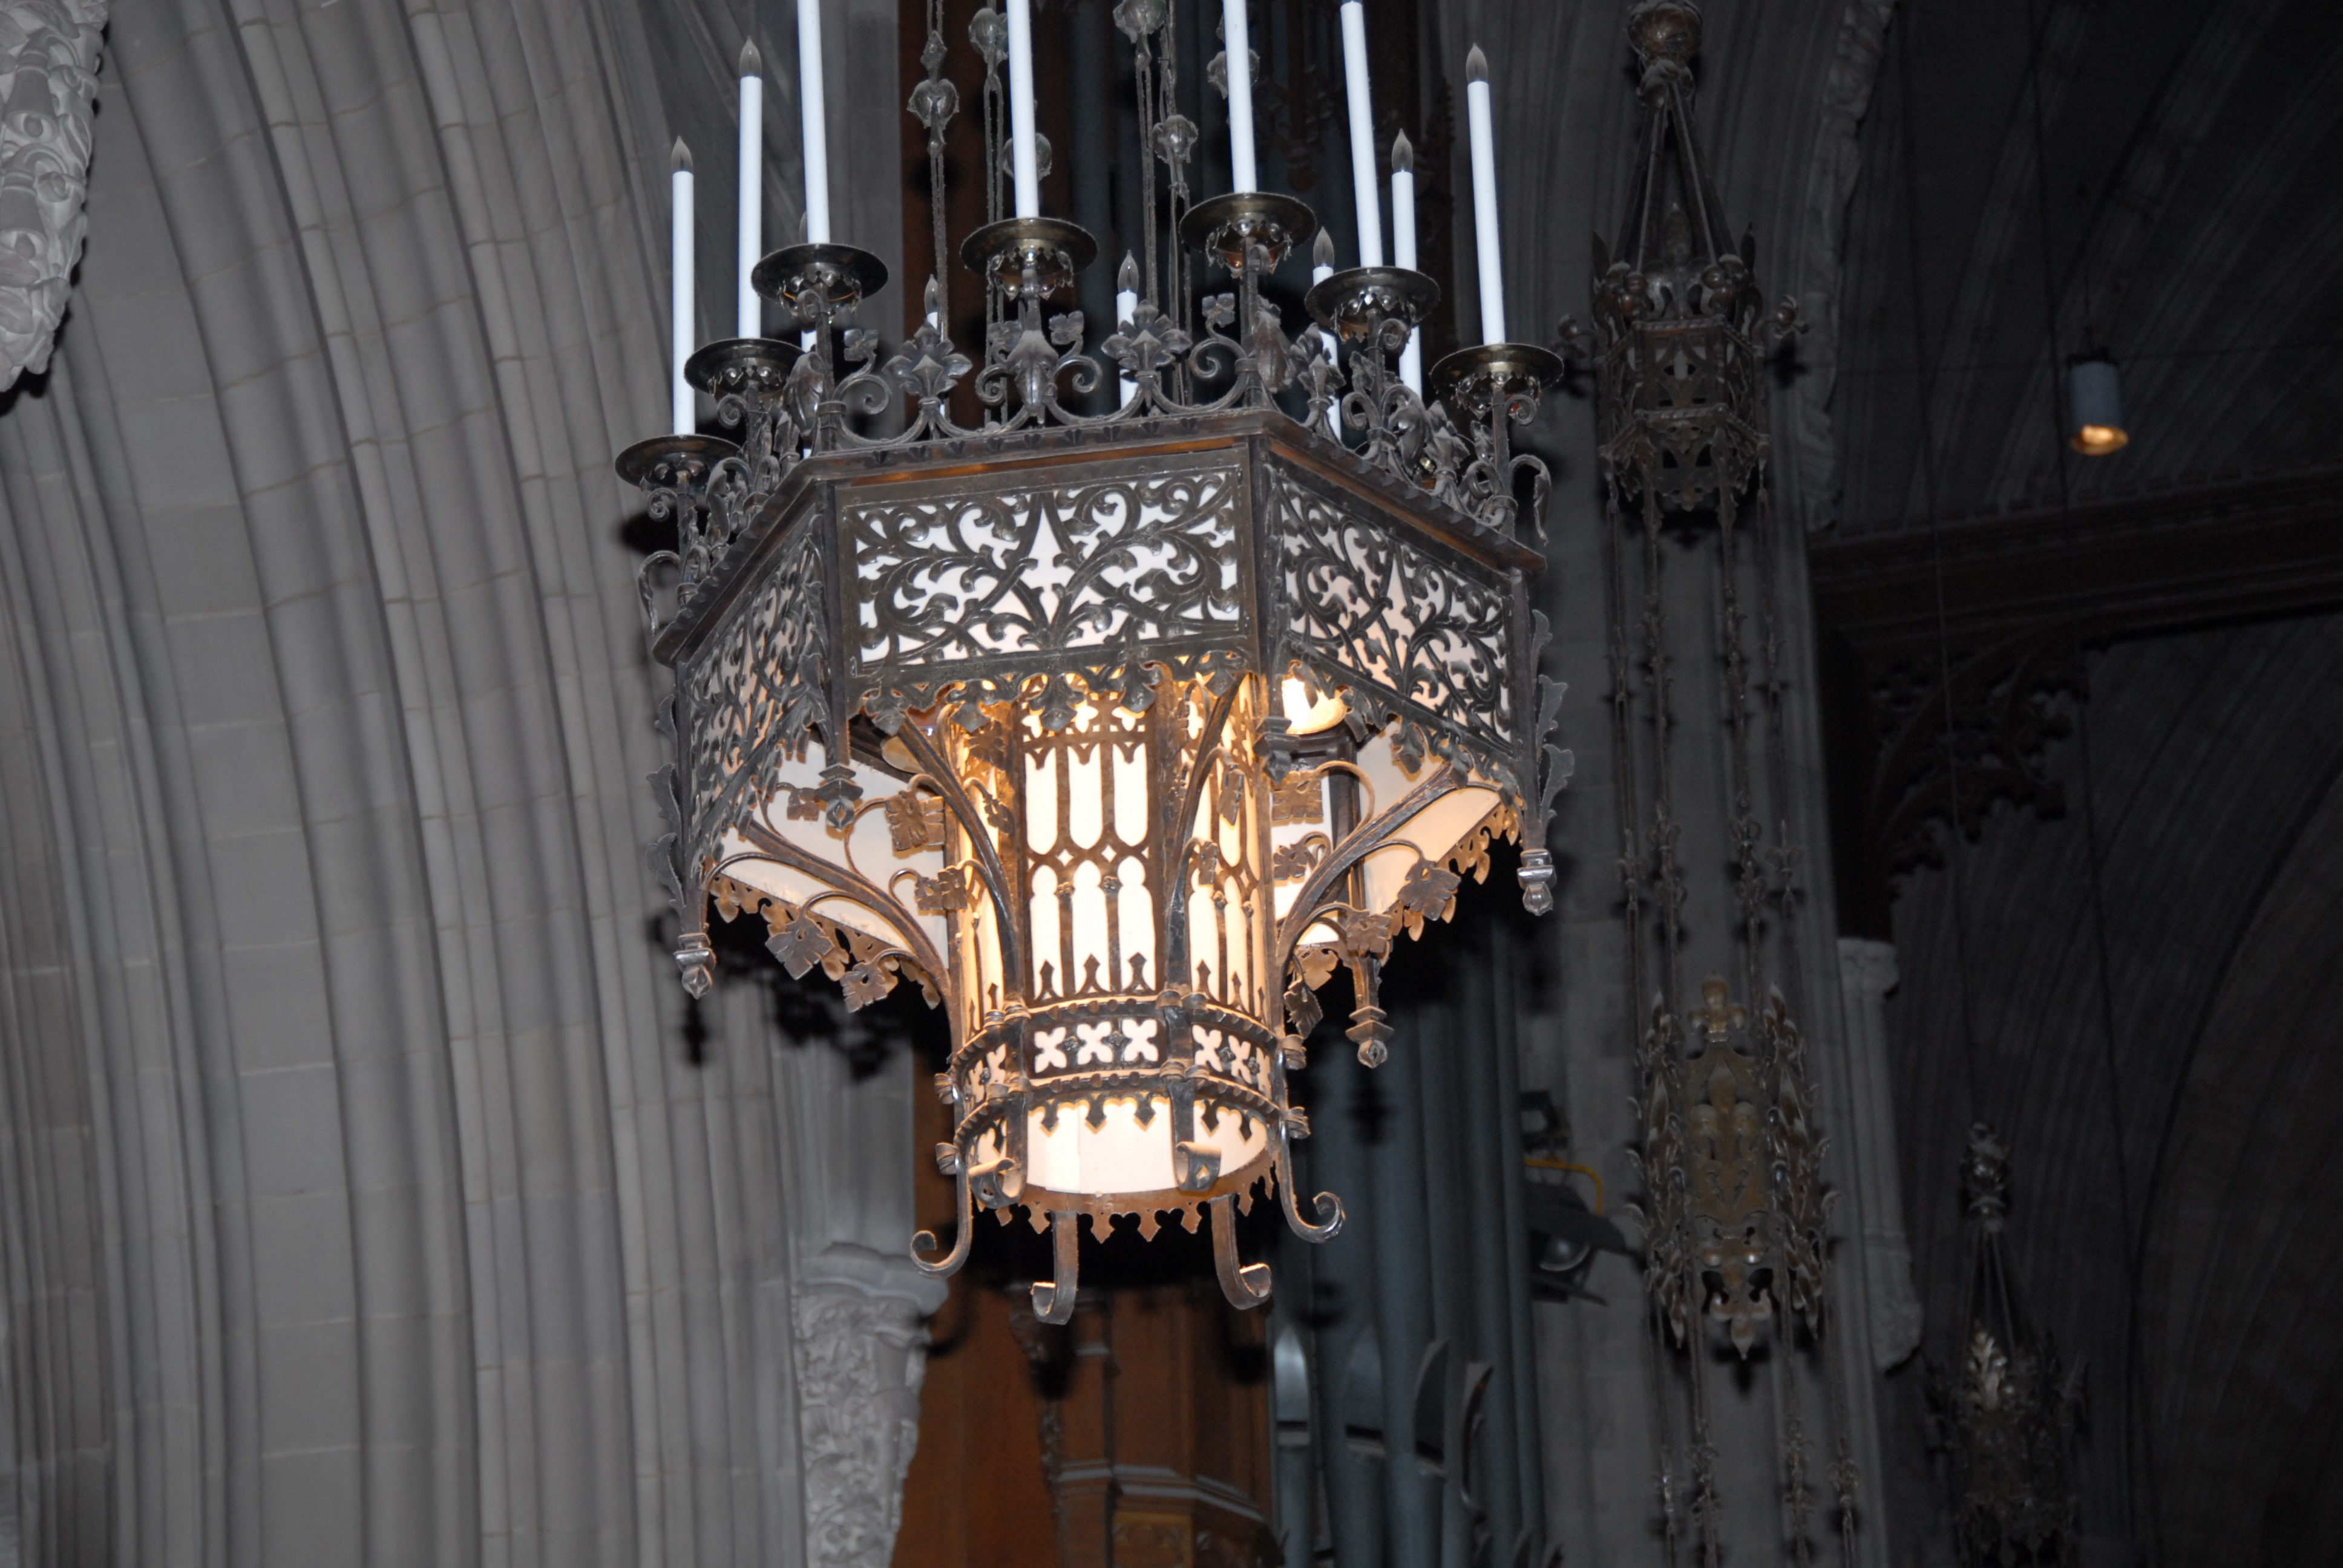 Great Choir Chandeliers by Walter Kantack